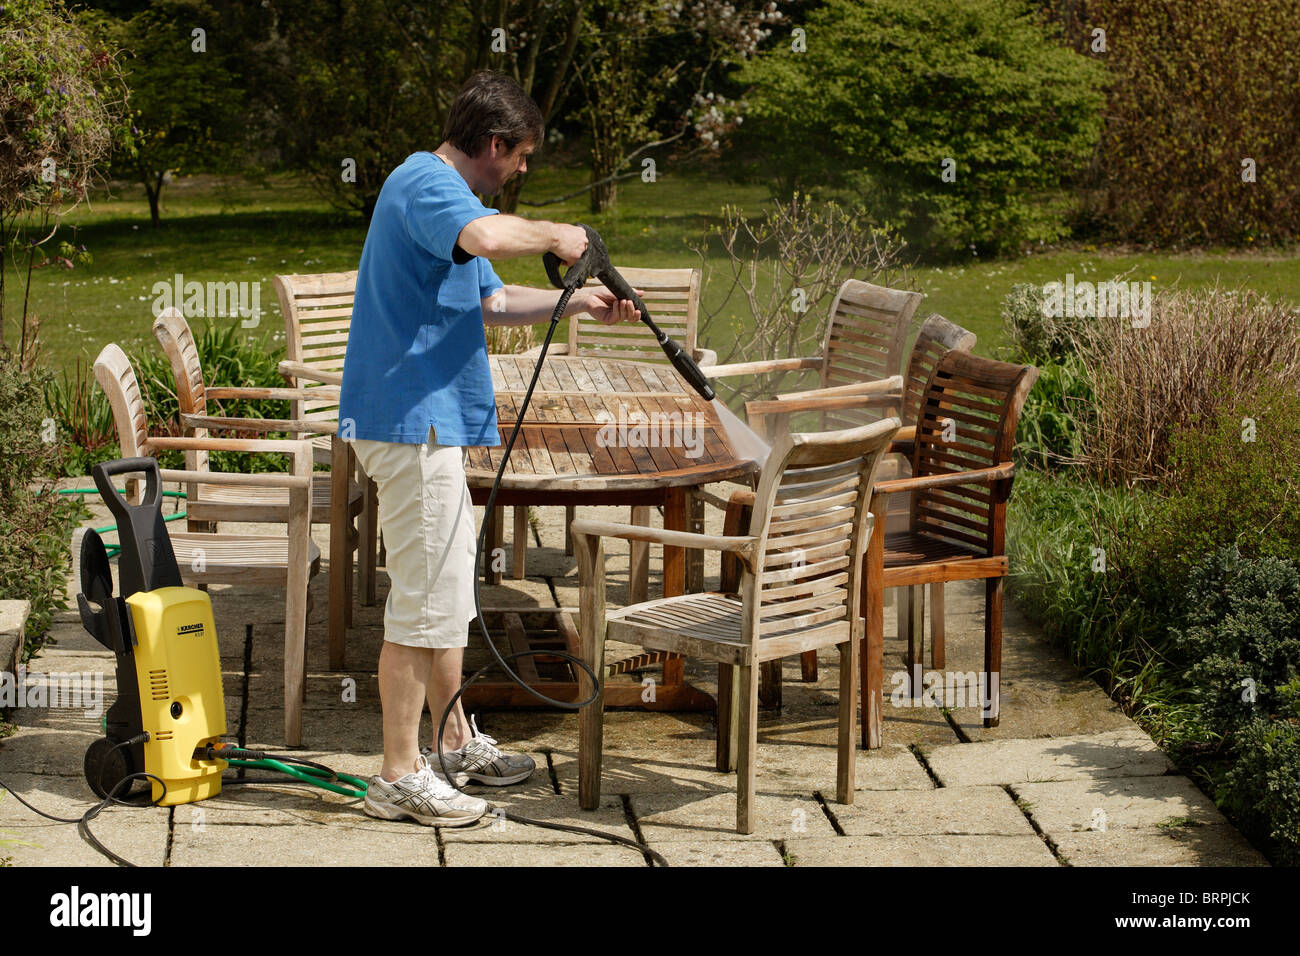 Man Using A Pressure Washer To Clean Teak Wood Garden Furniture. Man Using  A Pressure Part 61